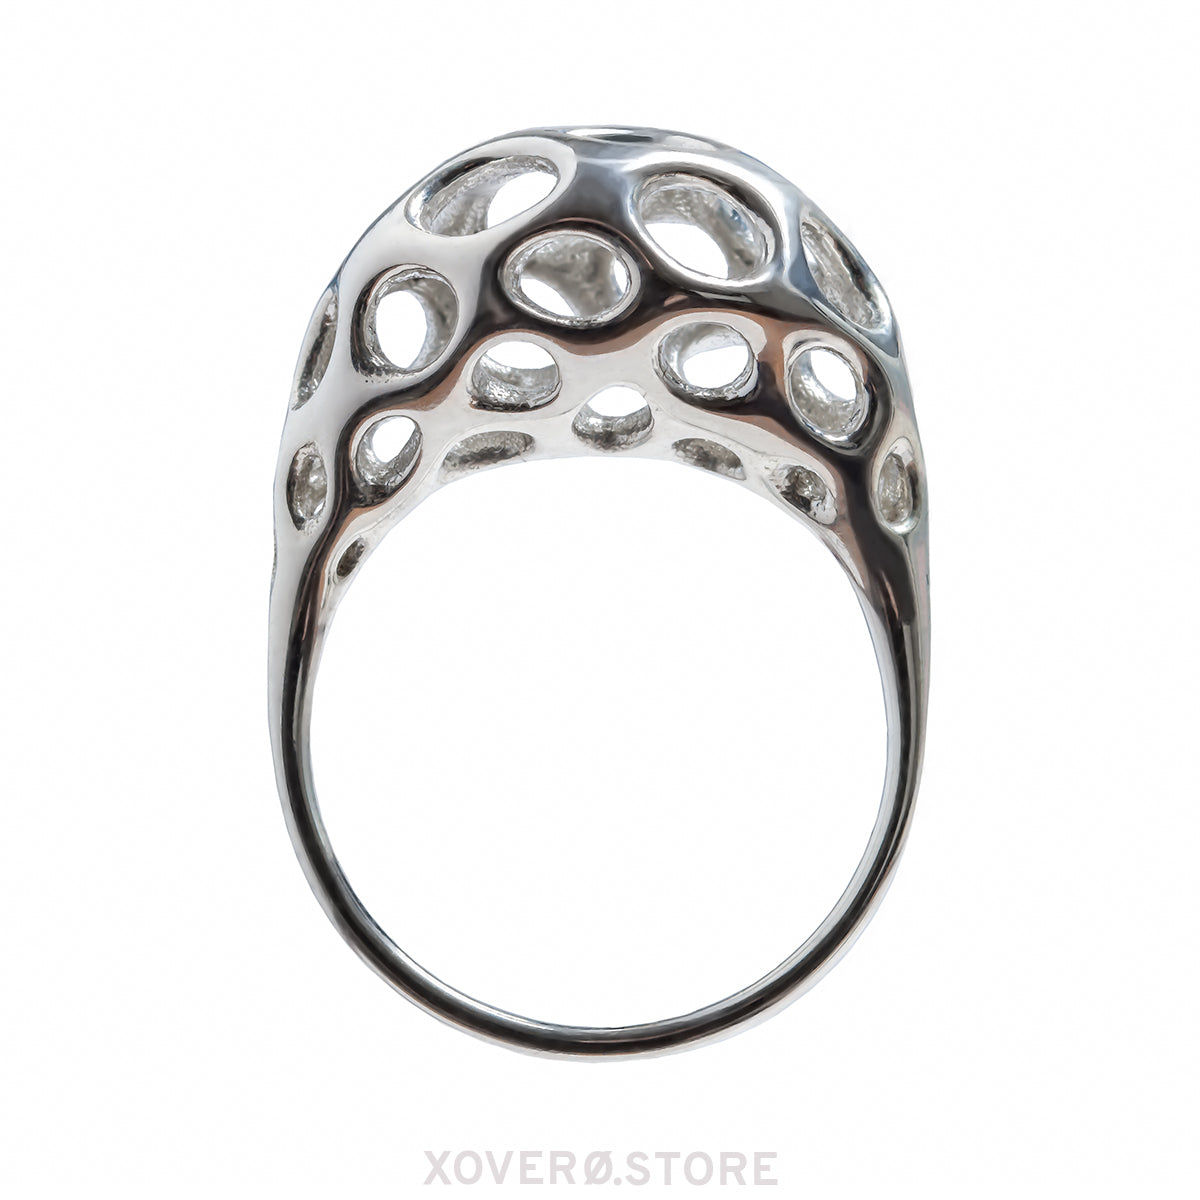 ORPHEUS - 3d Printed Ring - Sterling or Gold-Plated